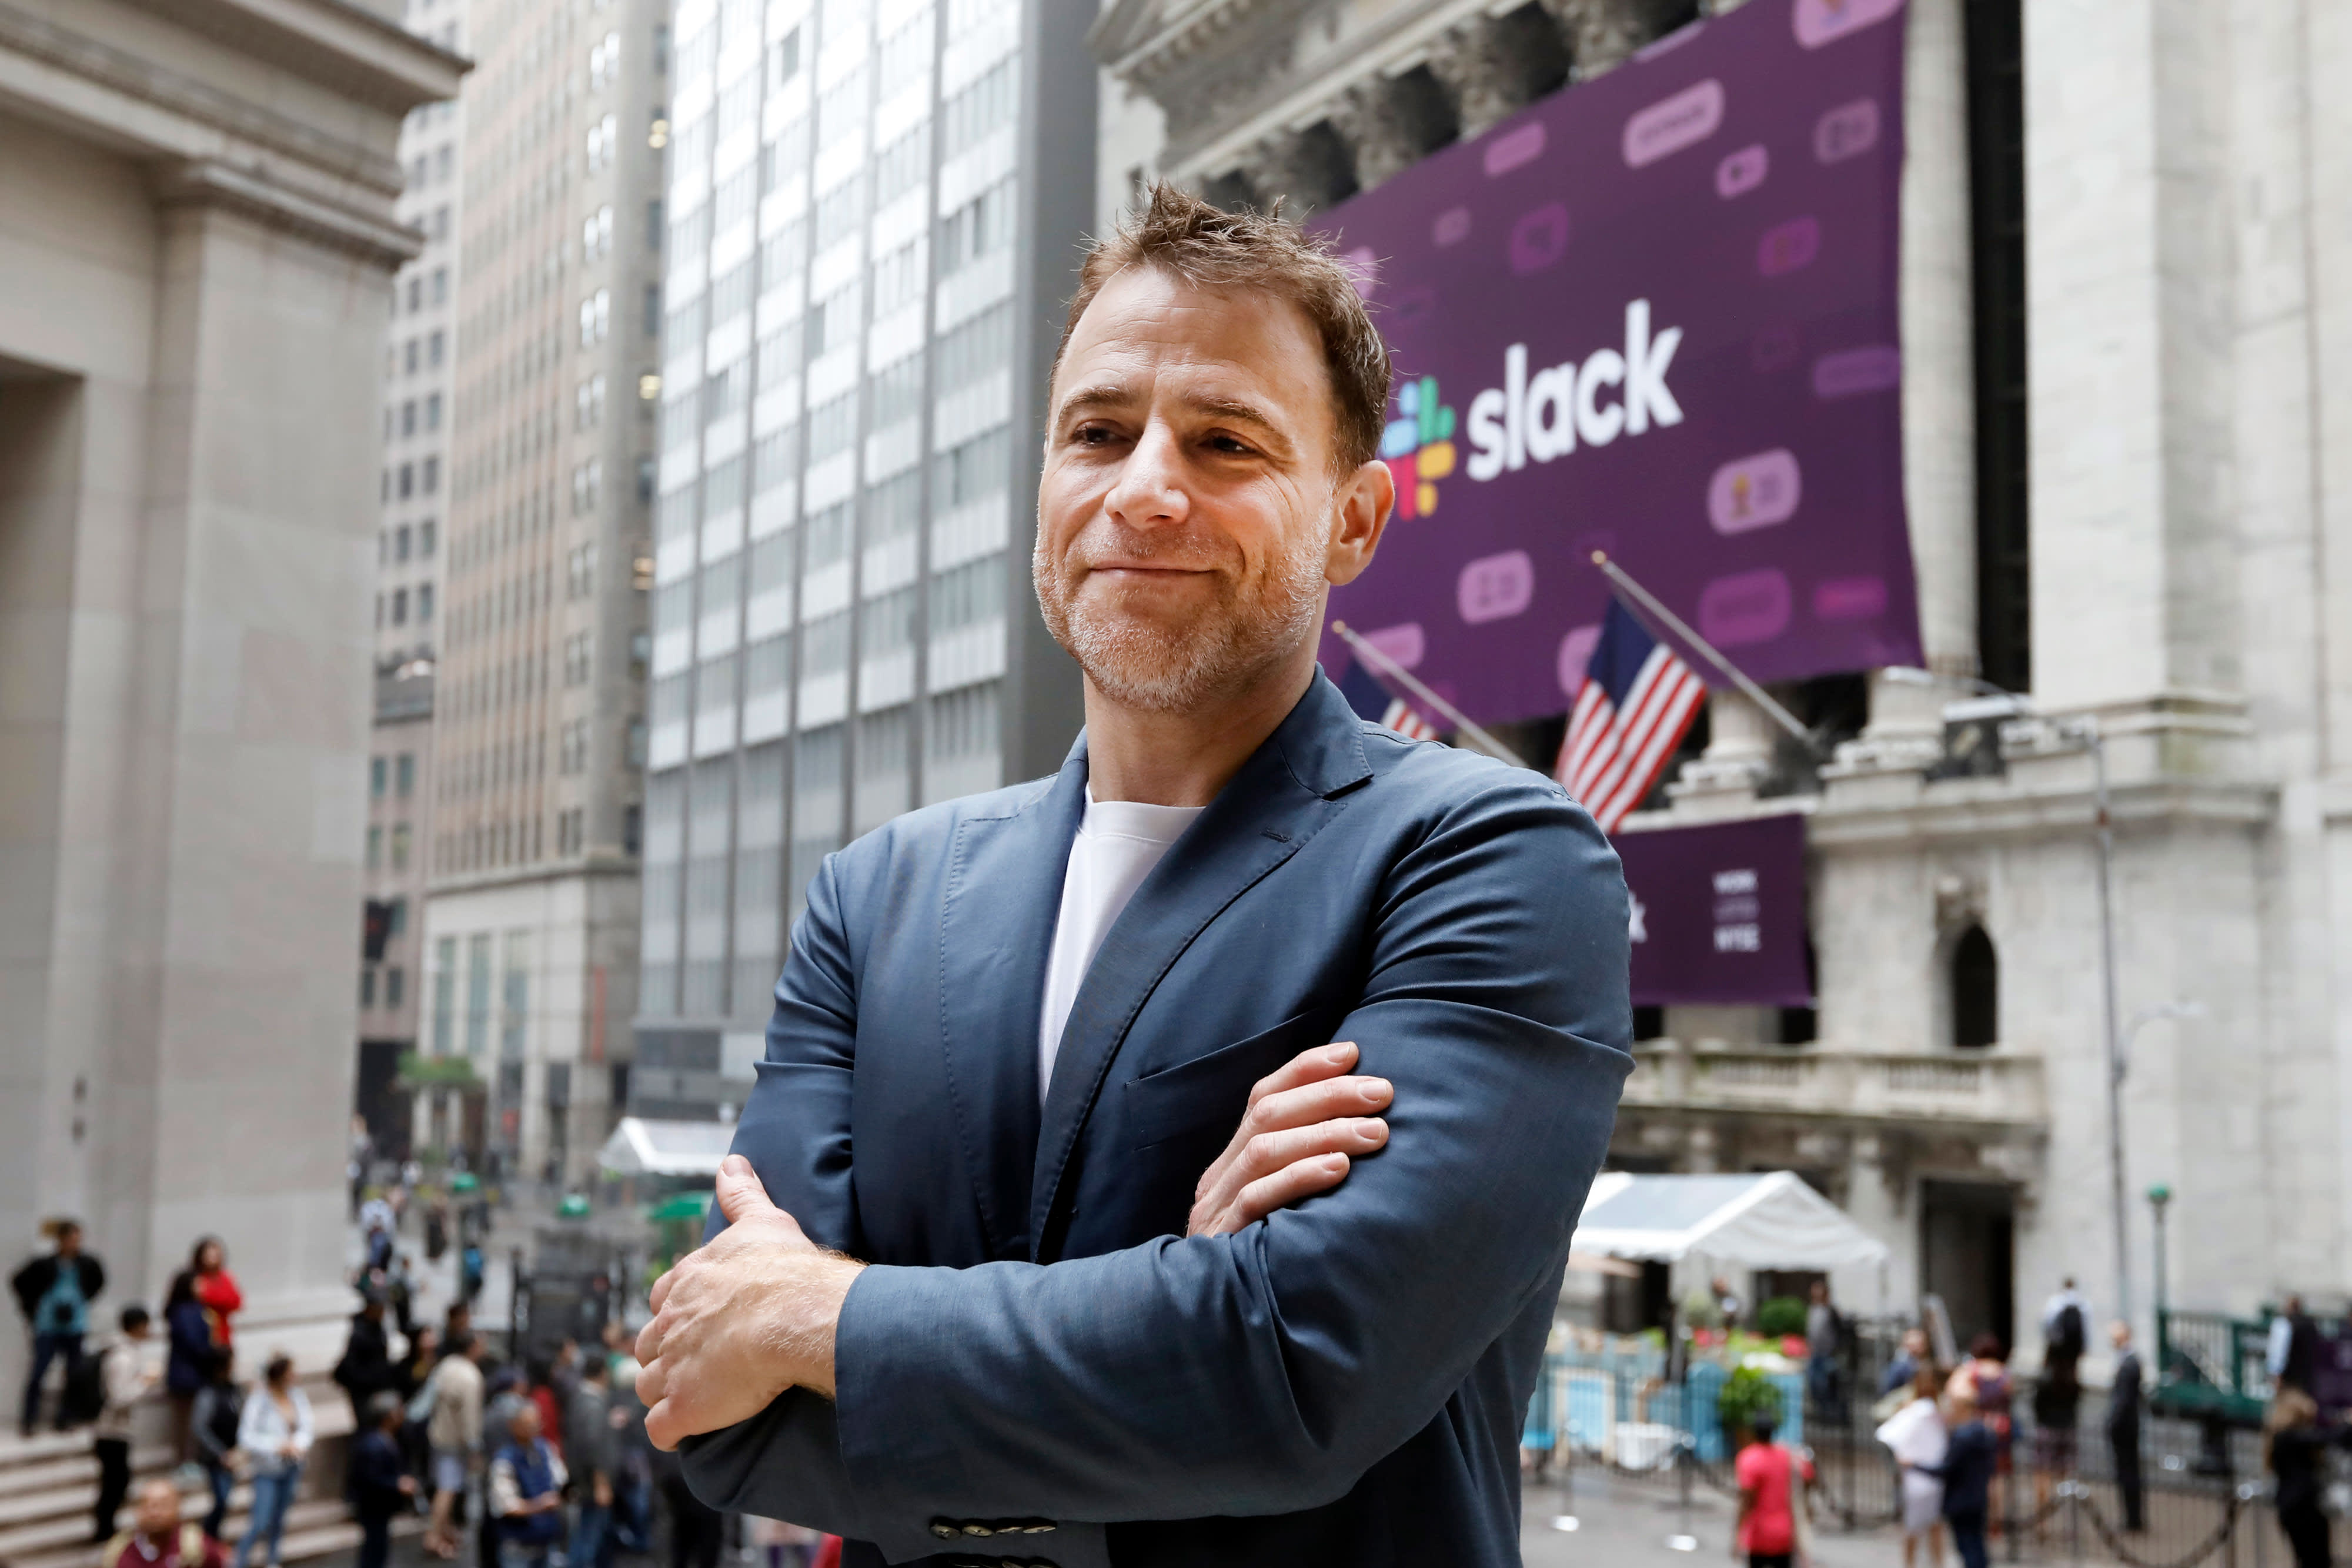 Slack CEO explains why the company didn't go public with a traditional IPO